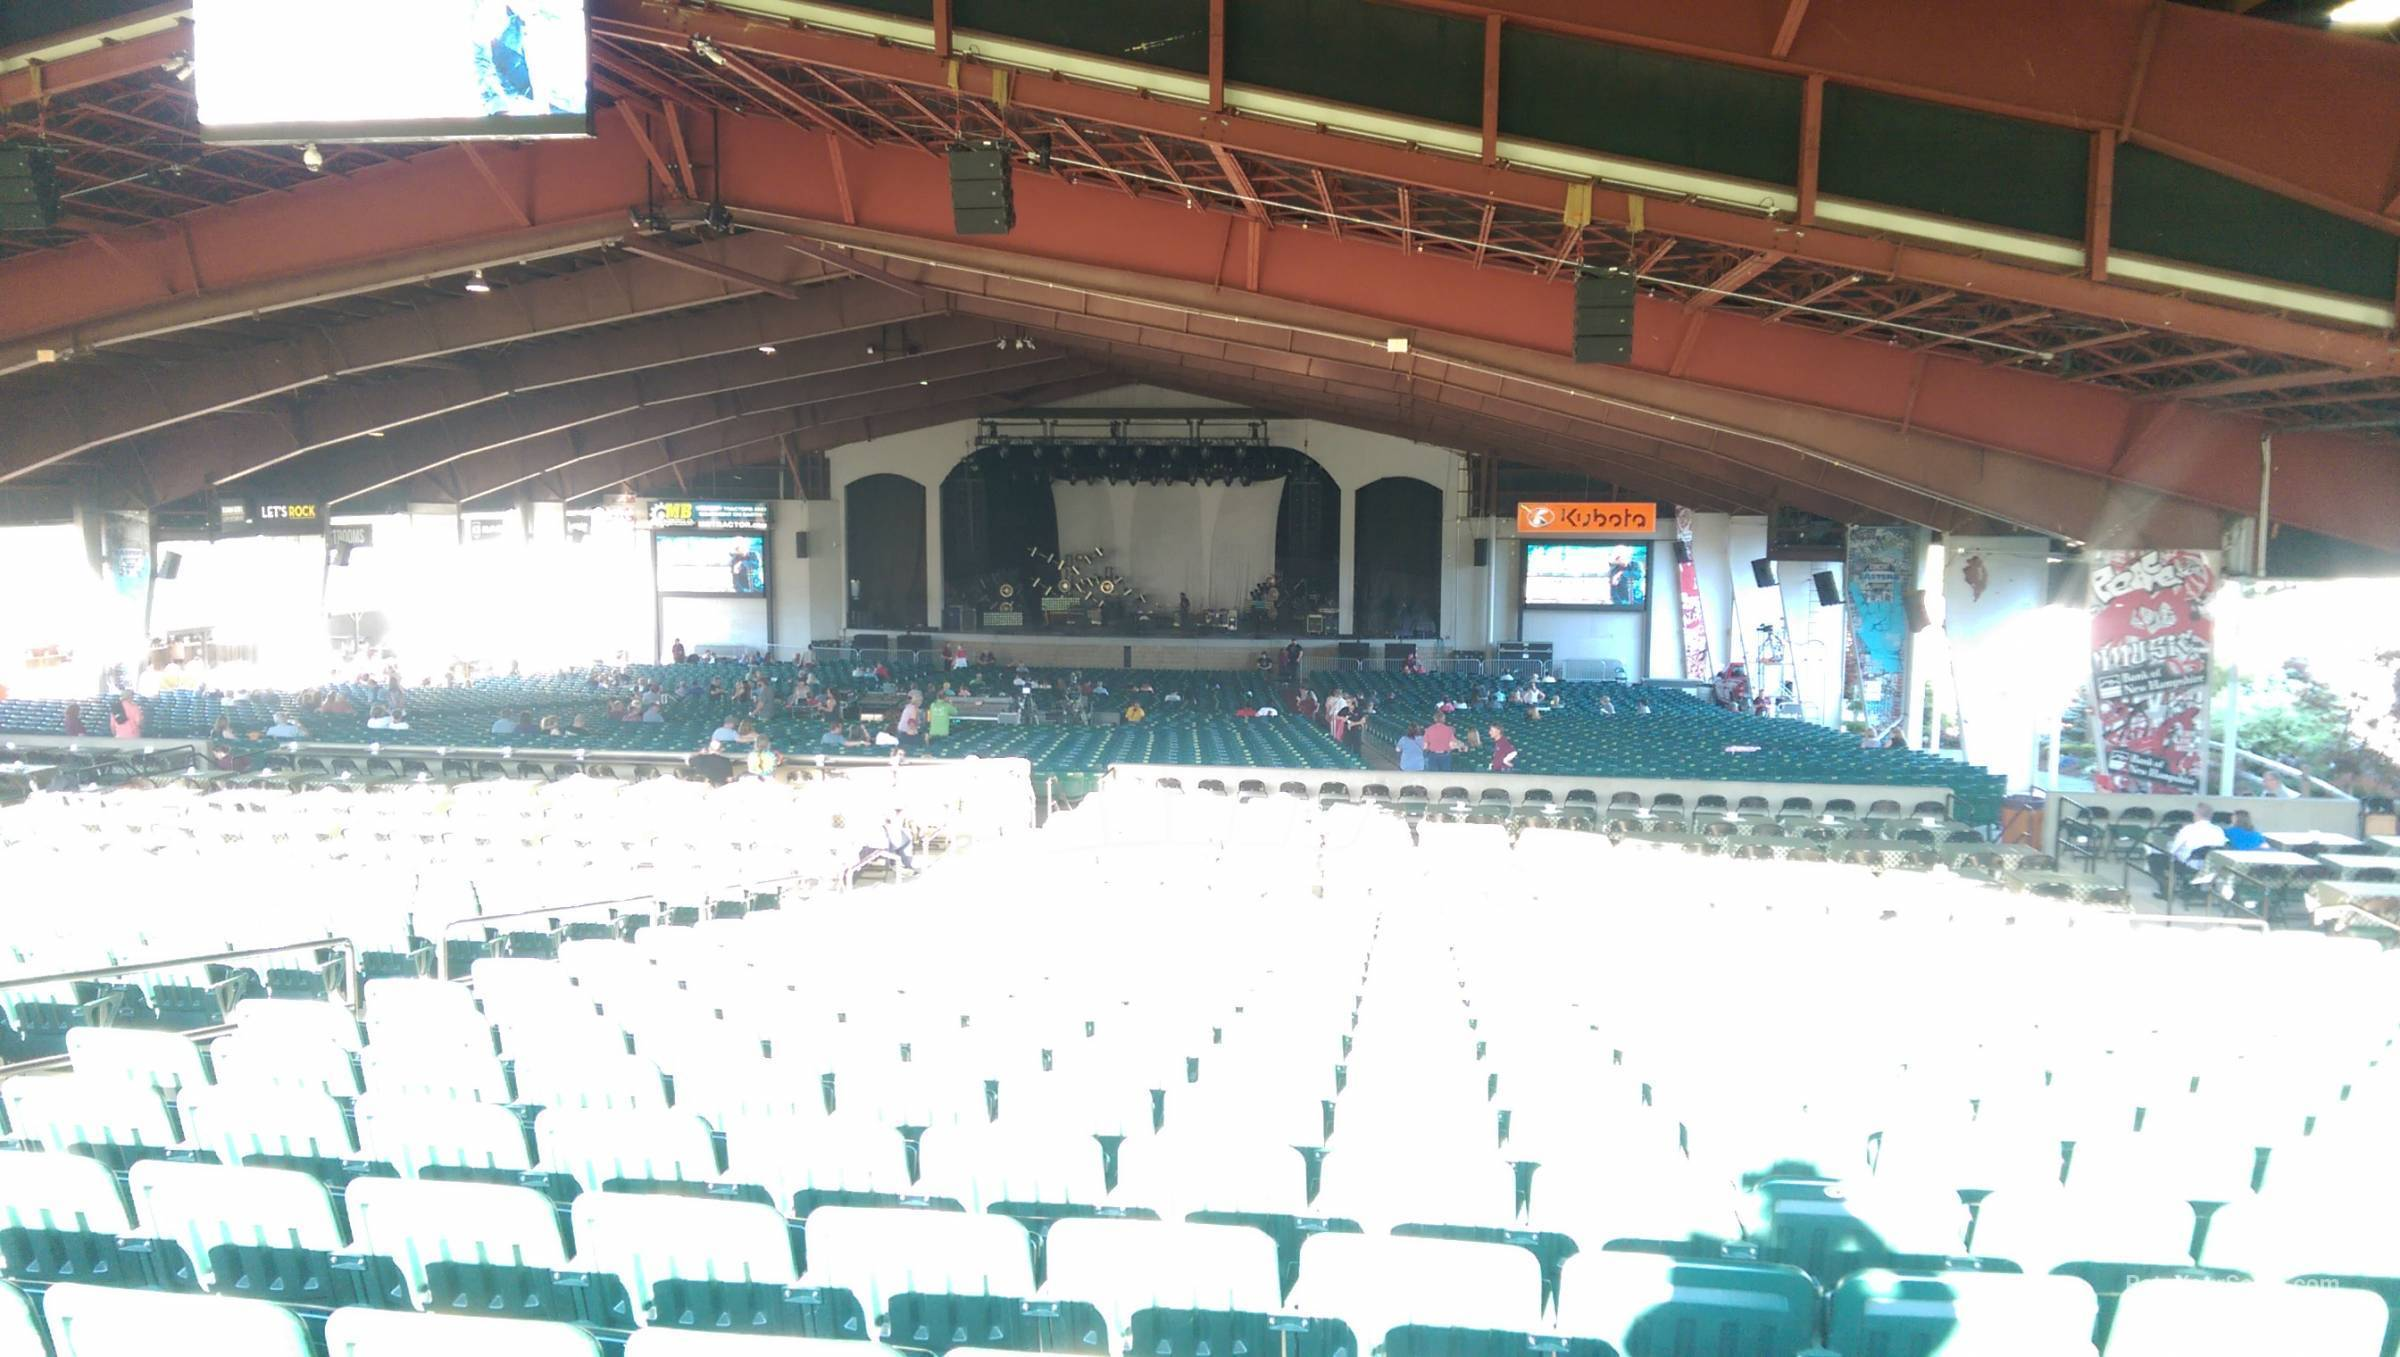 Concert Seat View For Bank Of New Hampshire Pavilion Meadowbrook Section